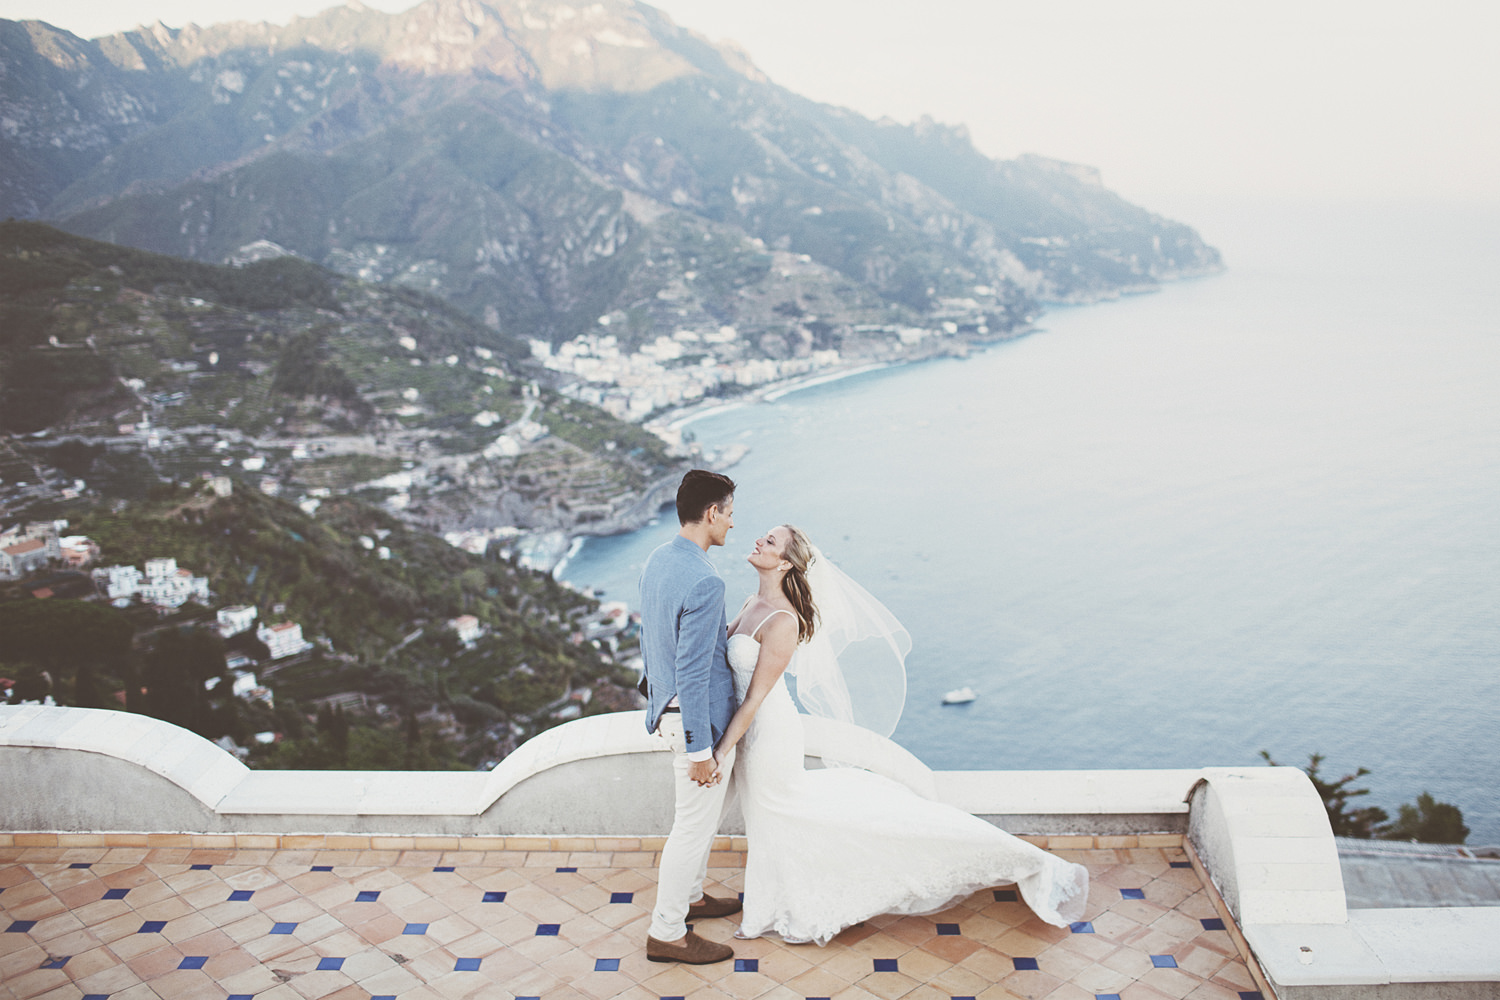 This beautiful outdoor wedding was a destination one on the Amalfi coast, with a glam touch